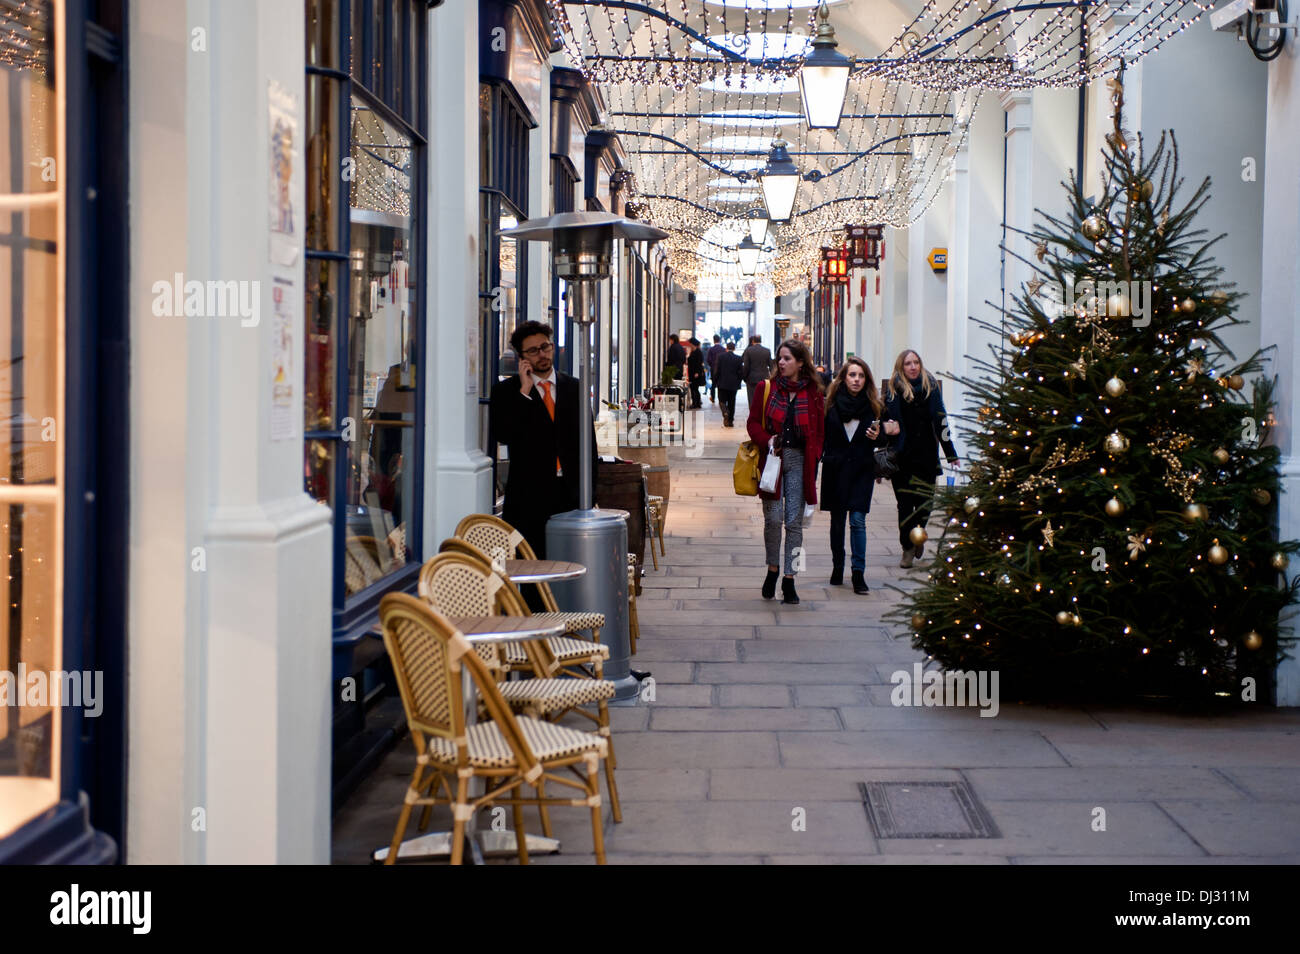 London, UK - November 19, 2013:People stroll in the Royal Opera Arcade, the first covered shopping street in Britain - Stock Image